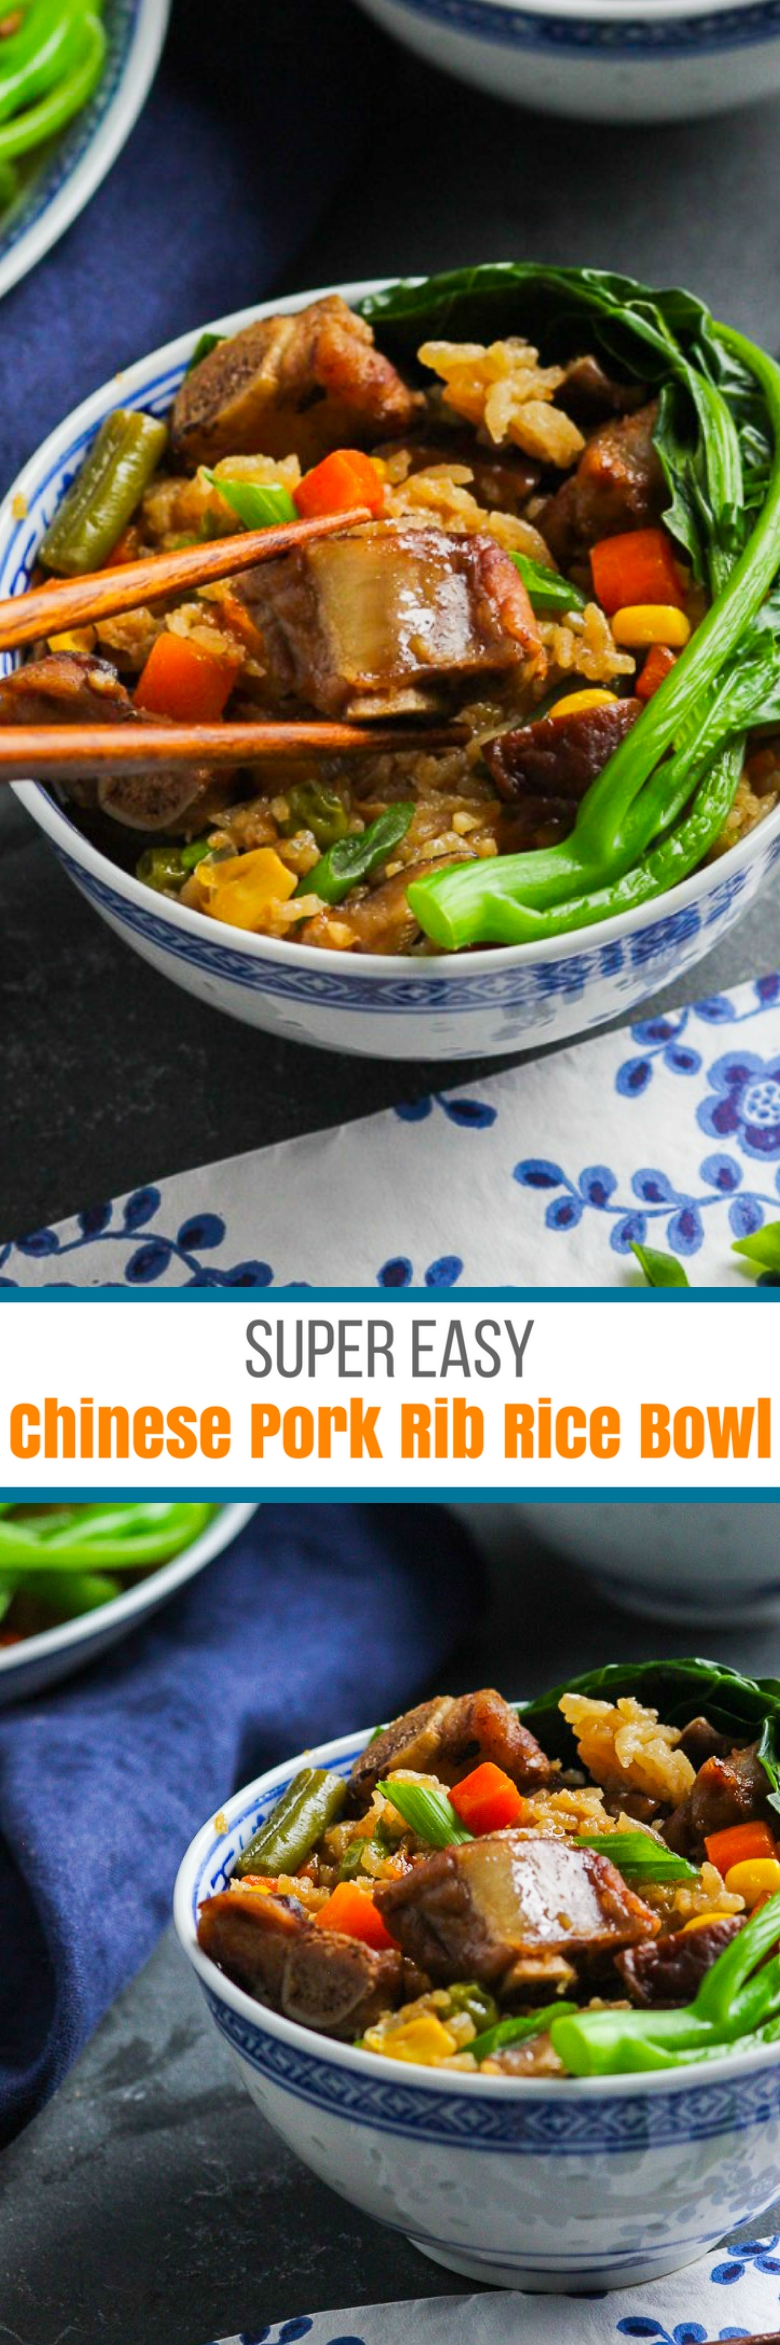 Chinese Pork Rib Rice Bowl For Pinterest